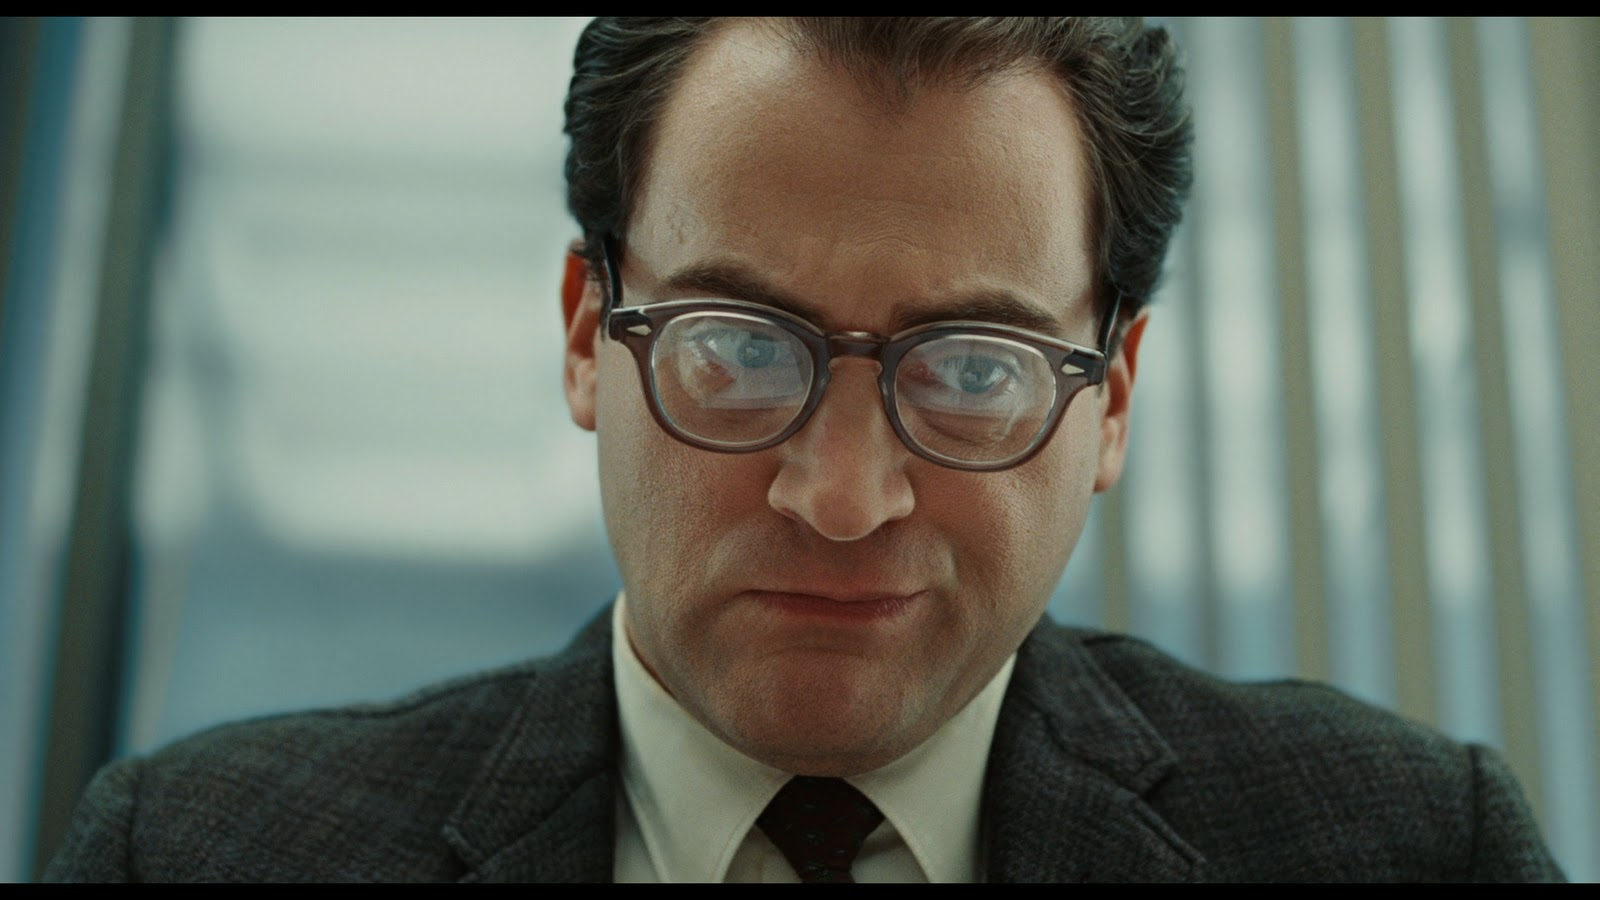 Serious man joel and ethan coen 2009 click for details if man were to